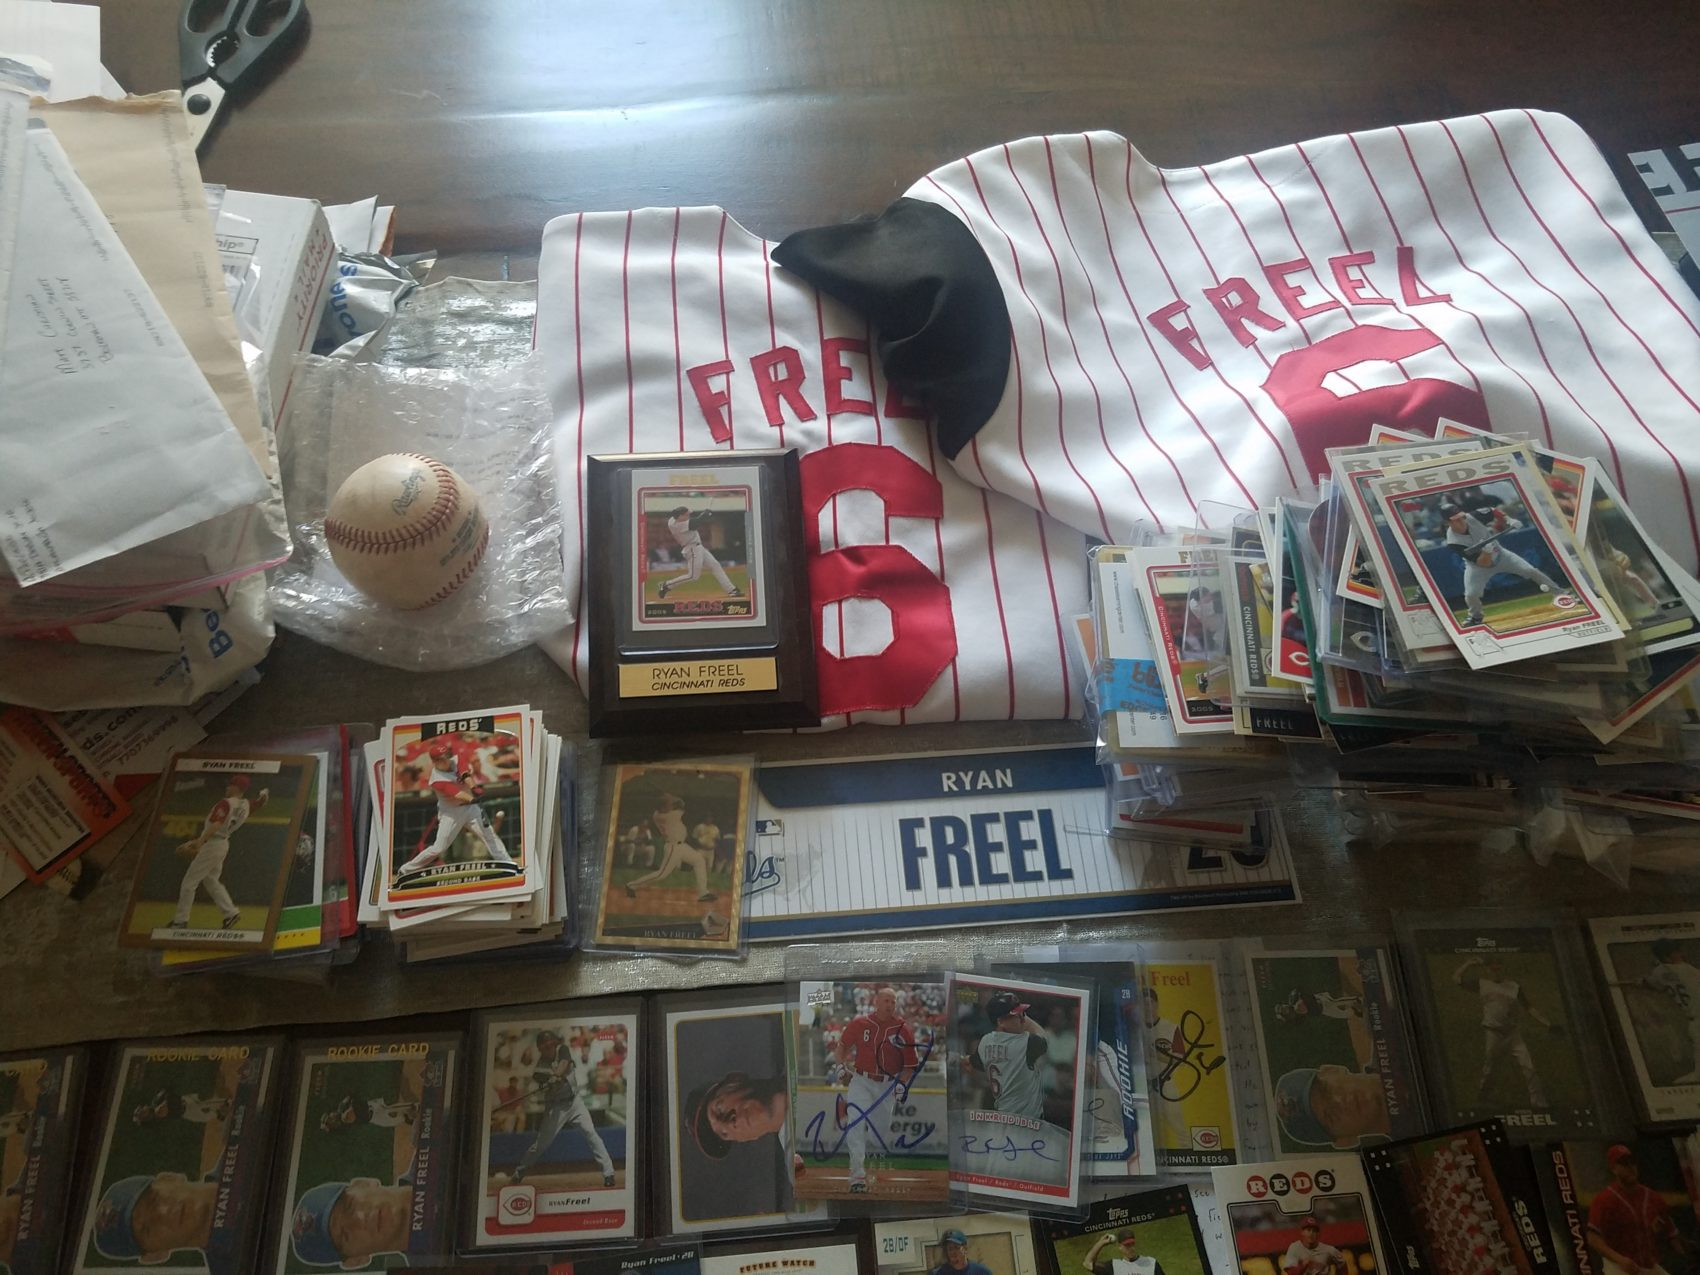 Some of the Ryan Freel memorabilia that's been sent to Matthew Christian. (Courtesy Matthew Christian)